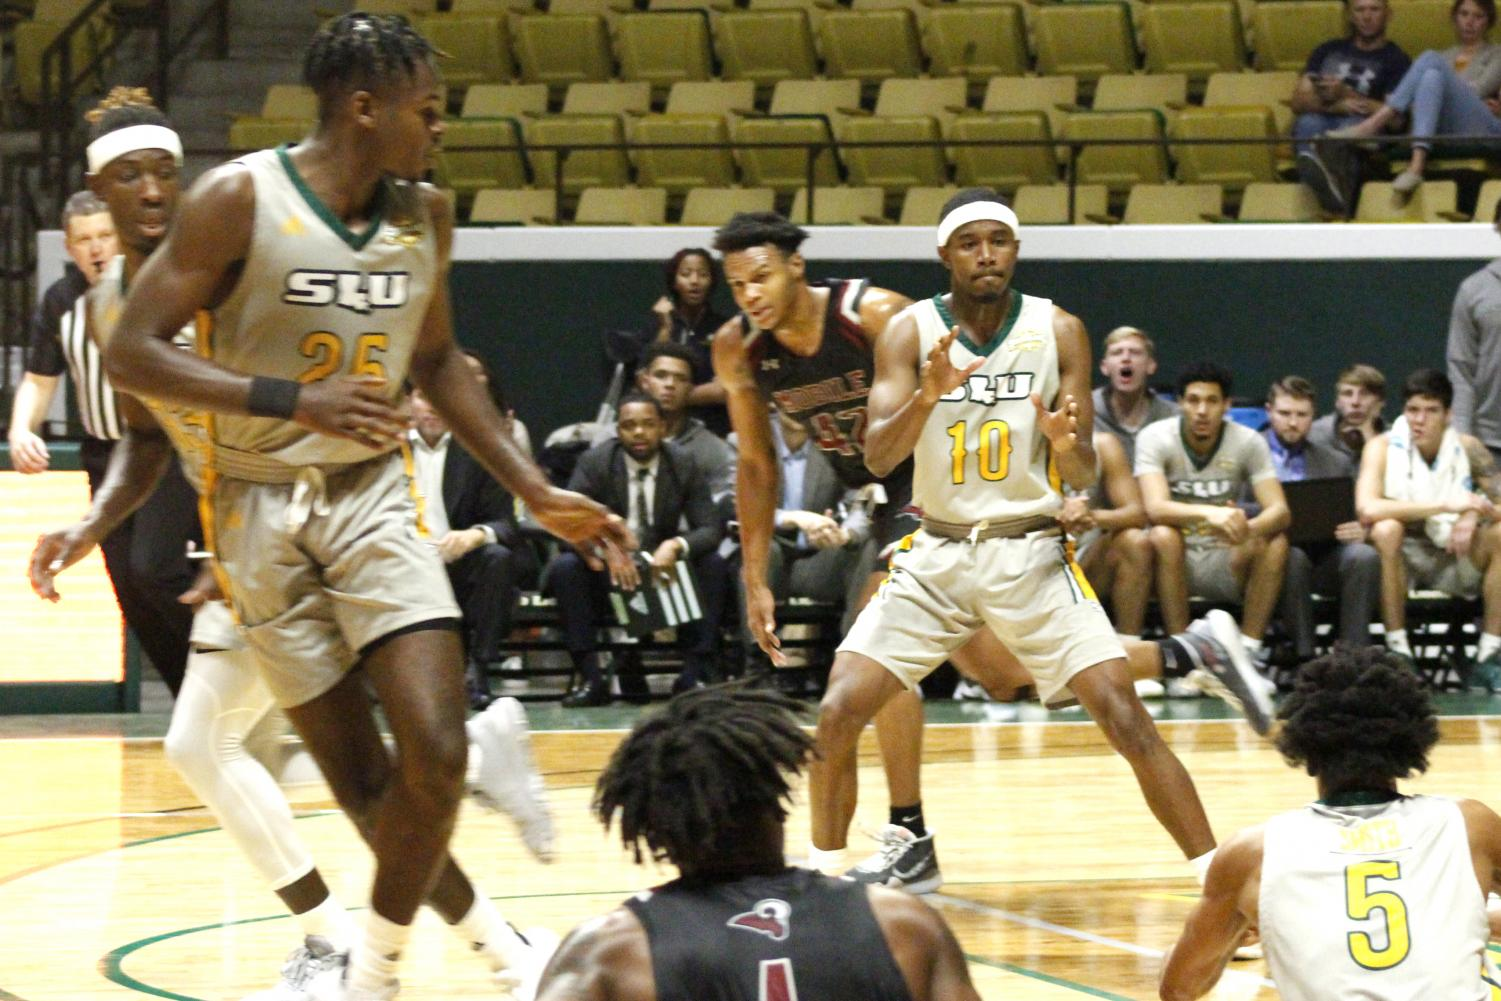 Senior guard Von Julien gets ready to catch a pass from freshman guard Byron Smith. With the 65-58 victory the Lions improved to 2-2 on the regular season. Southeastern's next game will be on the road against the University of Tulsa on Nov. 20.